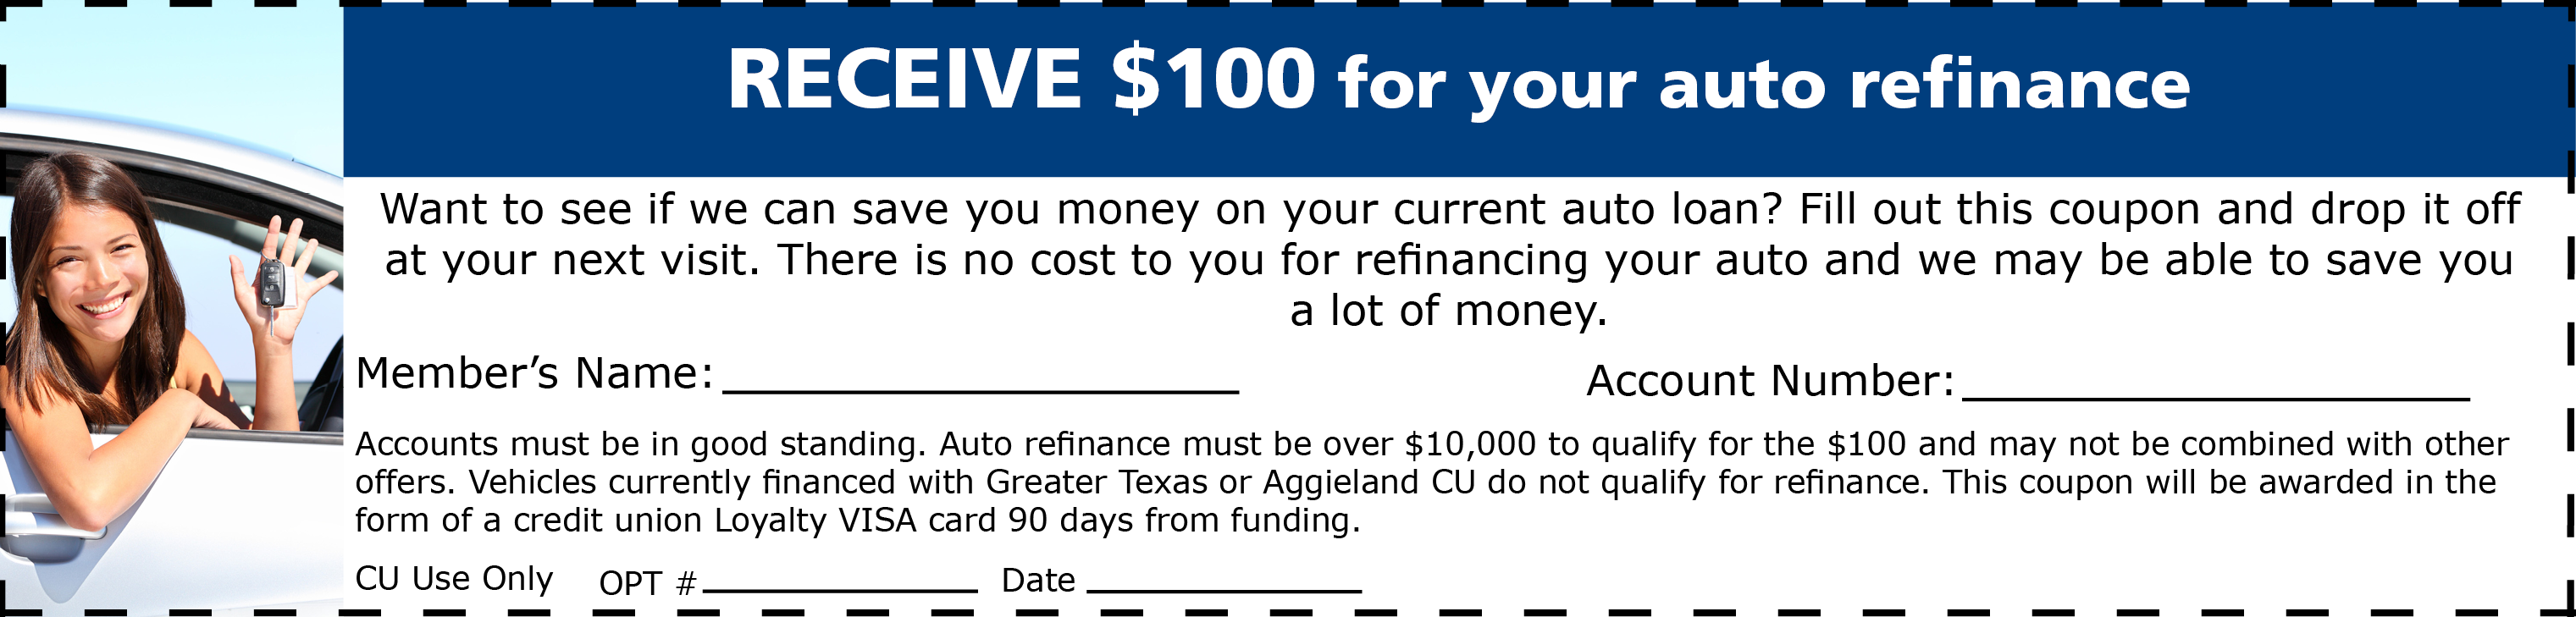 Receive $100 when you refinance your auto loan from another lender.